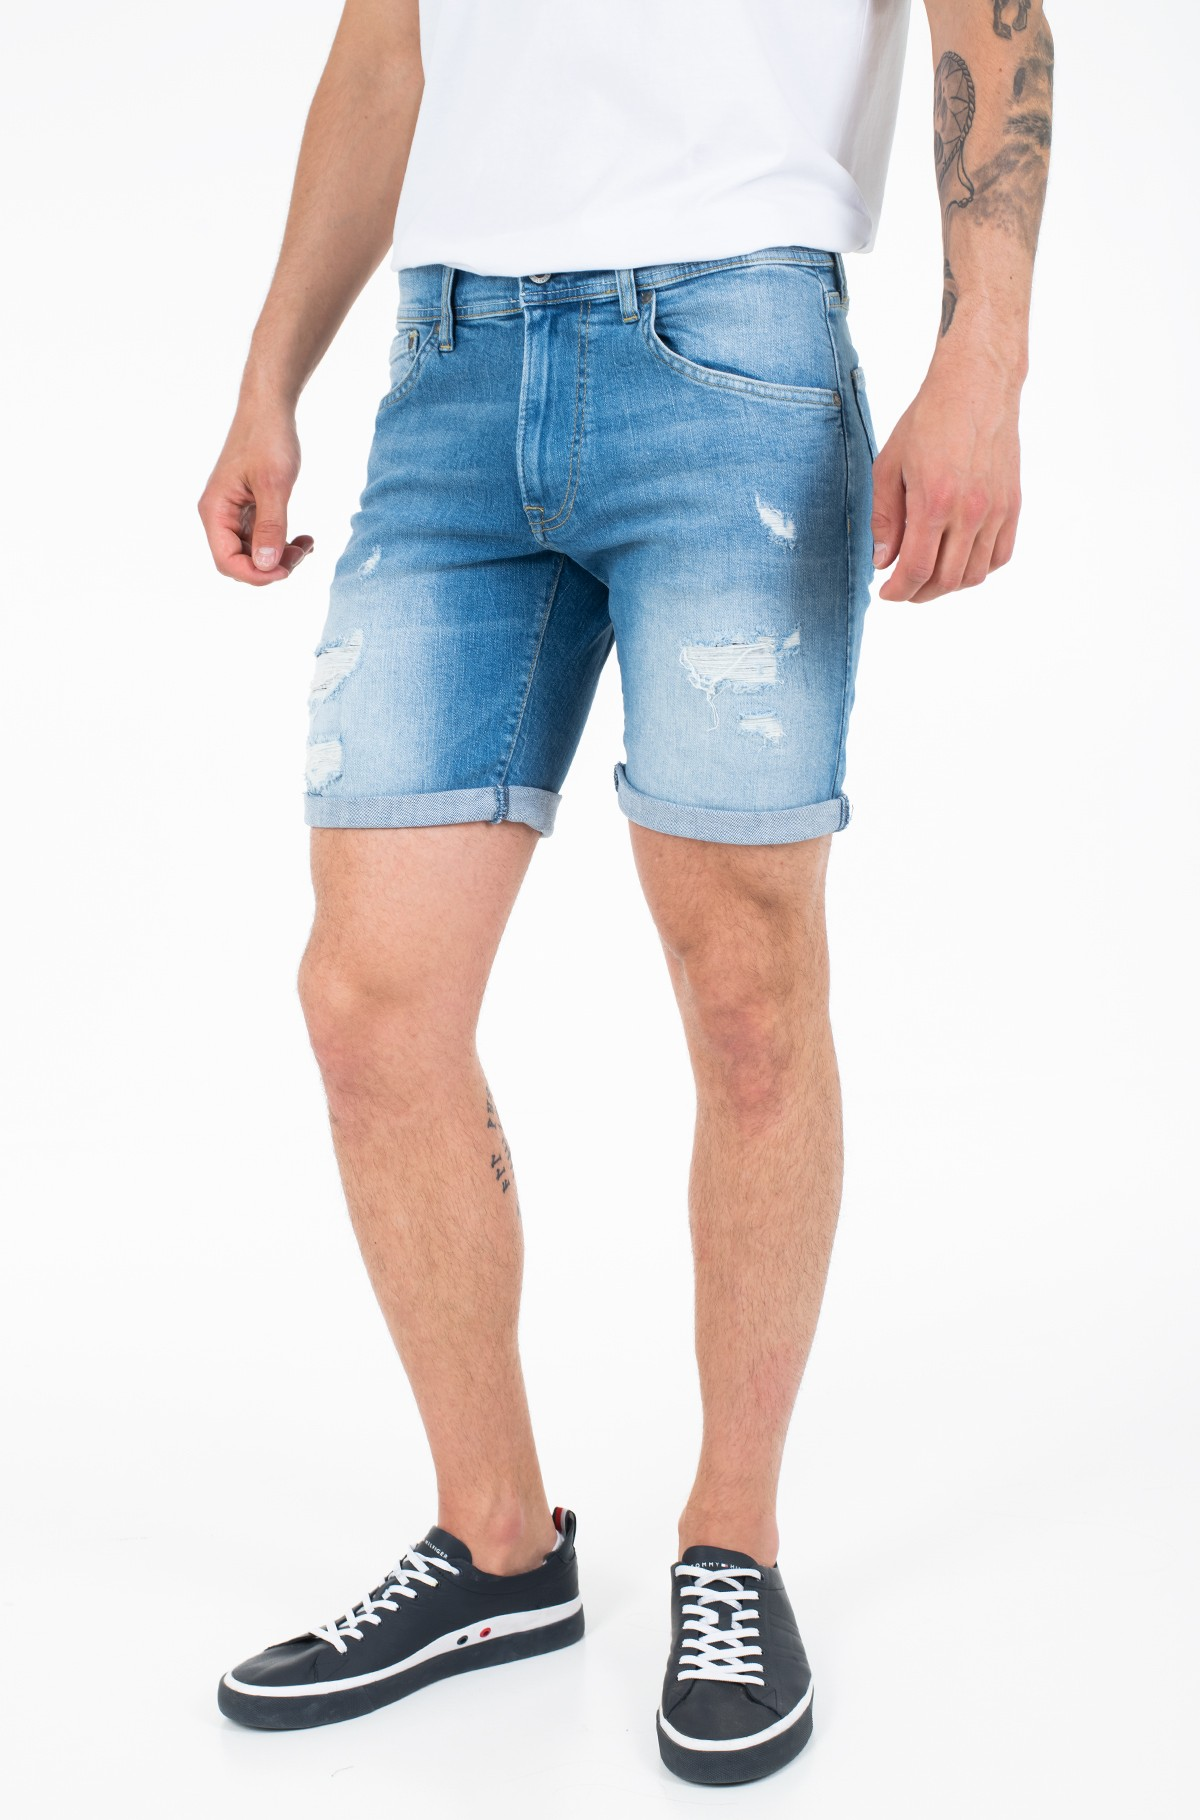 Šorti CANE SHORT/PM800543GQ4-full-1